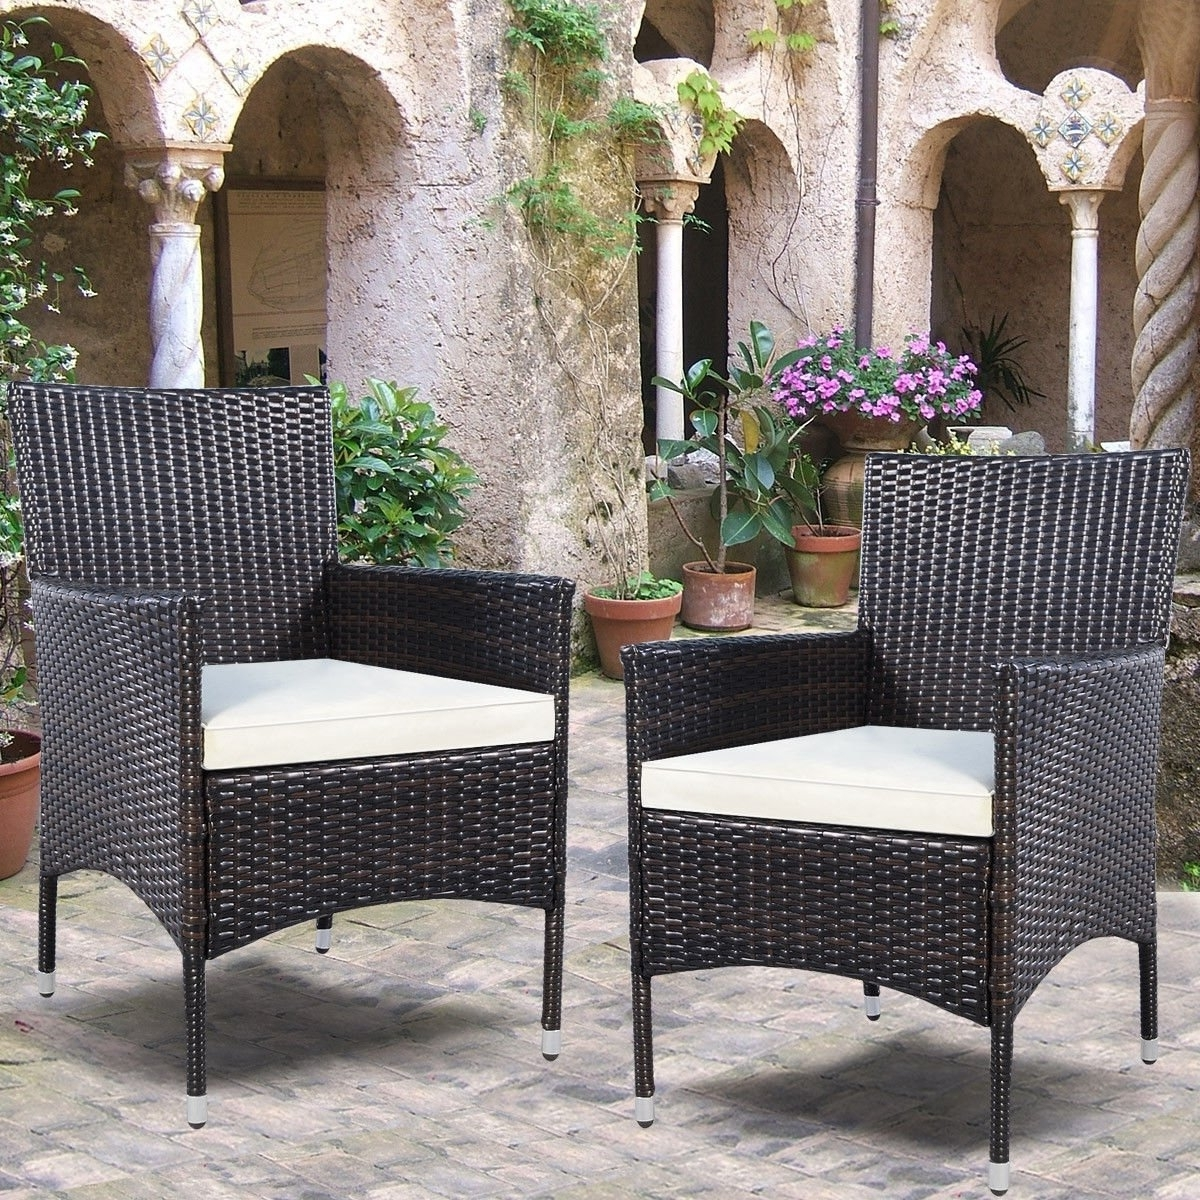 2018 Candice Ii 7 Piece Extension Rectangular Dining Sets With Slat Back Side Chairs Intended For Shop 2Pc Chairs Outdoor Patio Rattan Wicker Dining Arm Seat With (View 1 of 25)